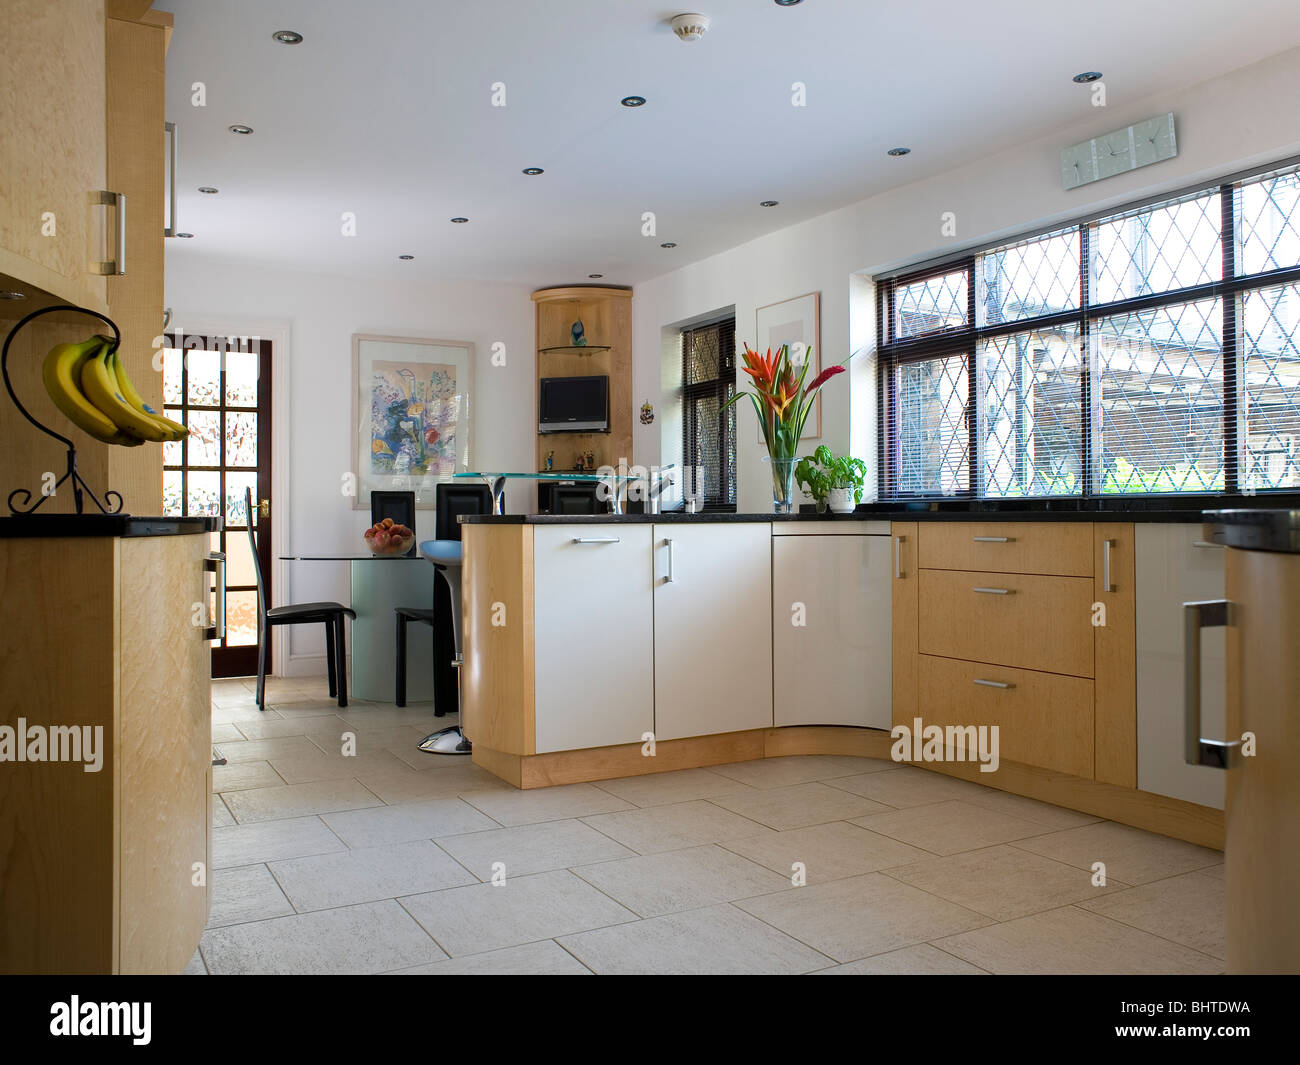 Limestone Floor Tiles In Modern Country Kitchen Dining Room Stock - Country kitchen tiles